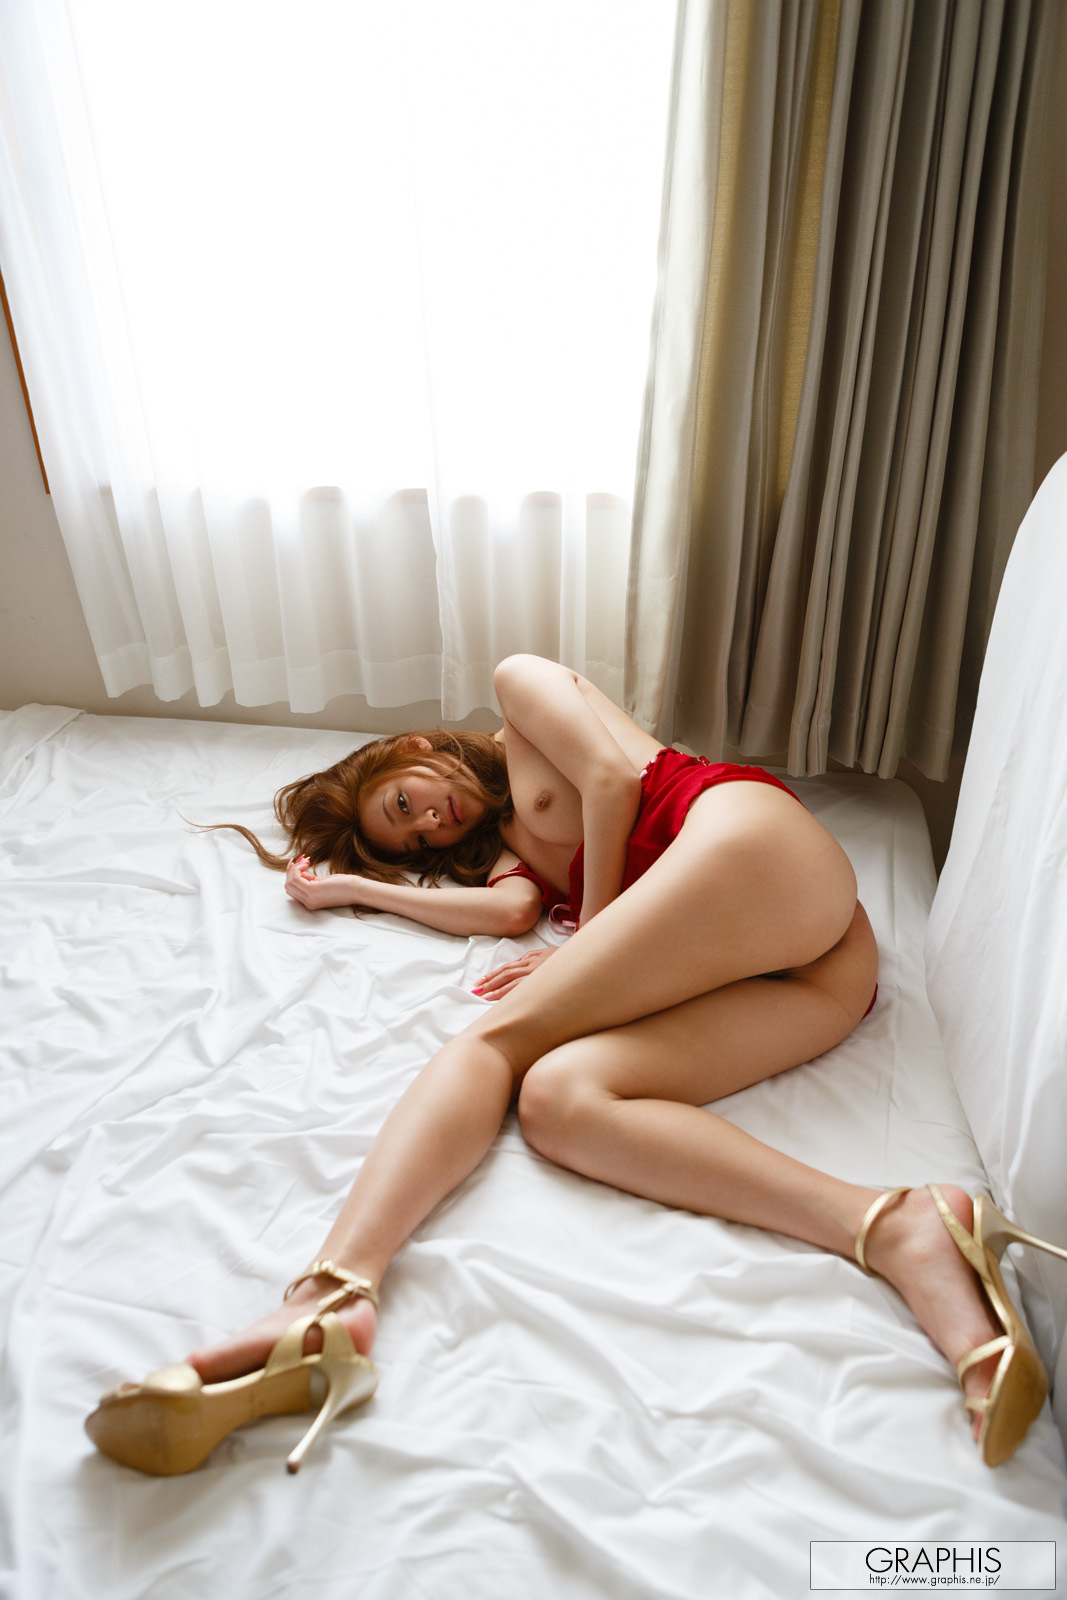 marie-shiraishi-red-nighty-naked-graphis-12